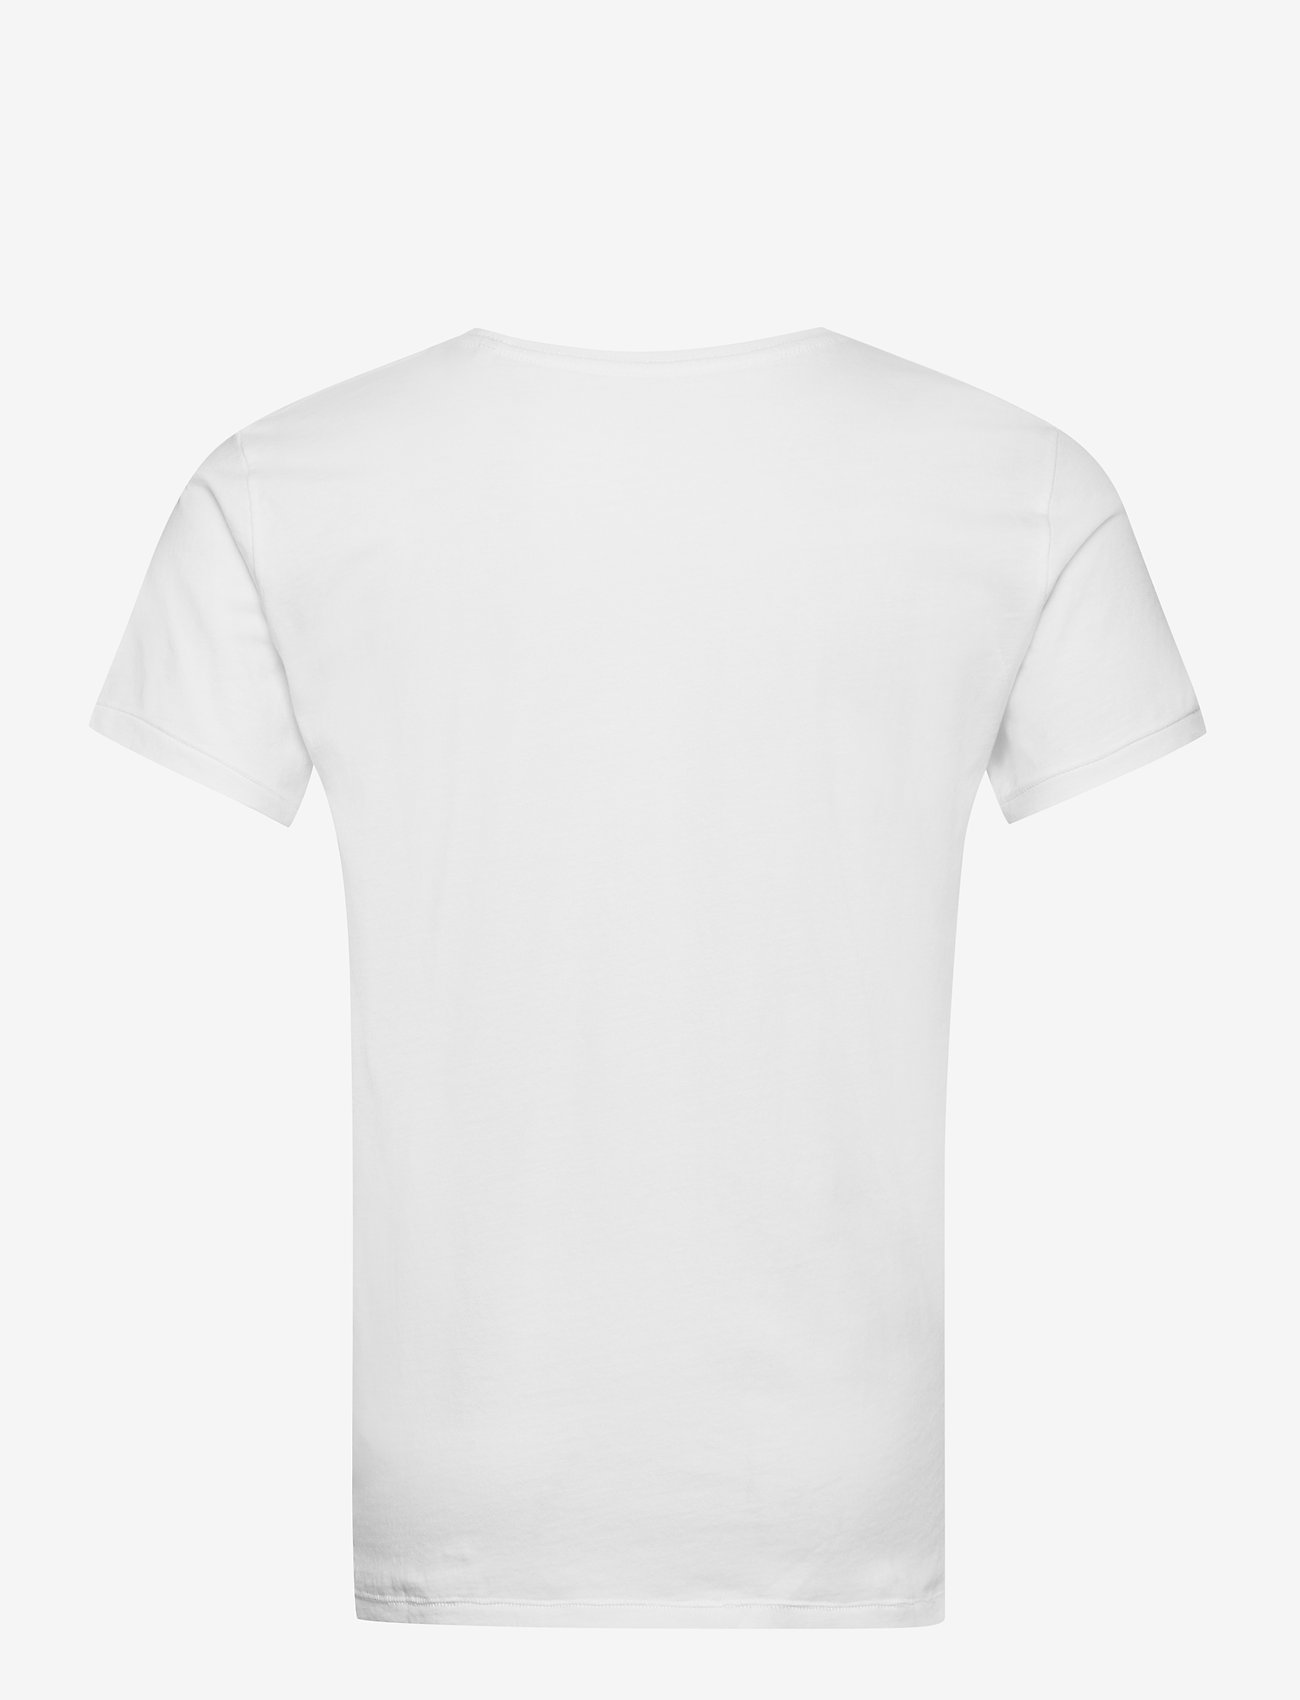 Knowledge Cotton Apparel - ALDER 5 pack basic tee - flat packe - basic t-shirts - bright white - 5